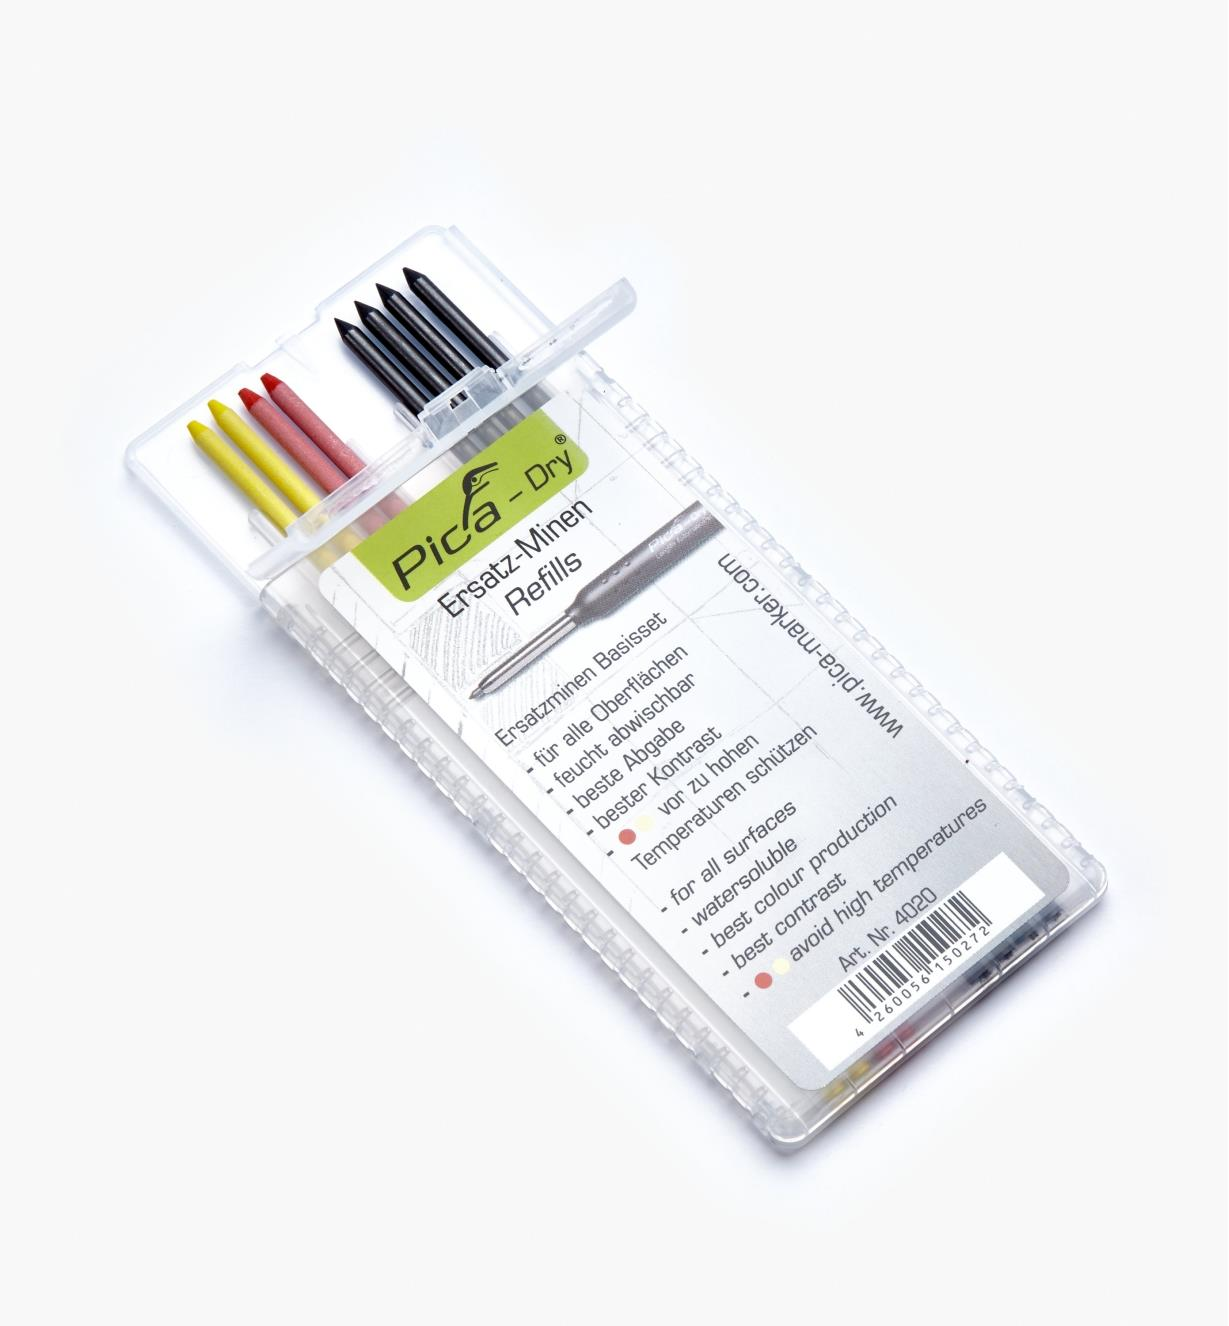 25K0415 - Set of 8 Pica-Dry Water-Soluble 2B Leads (4 Black, 2 Yellow, 2 Red)